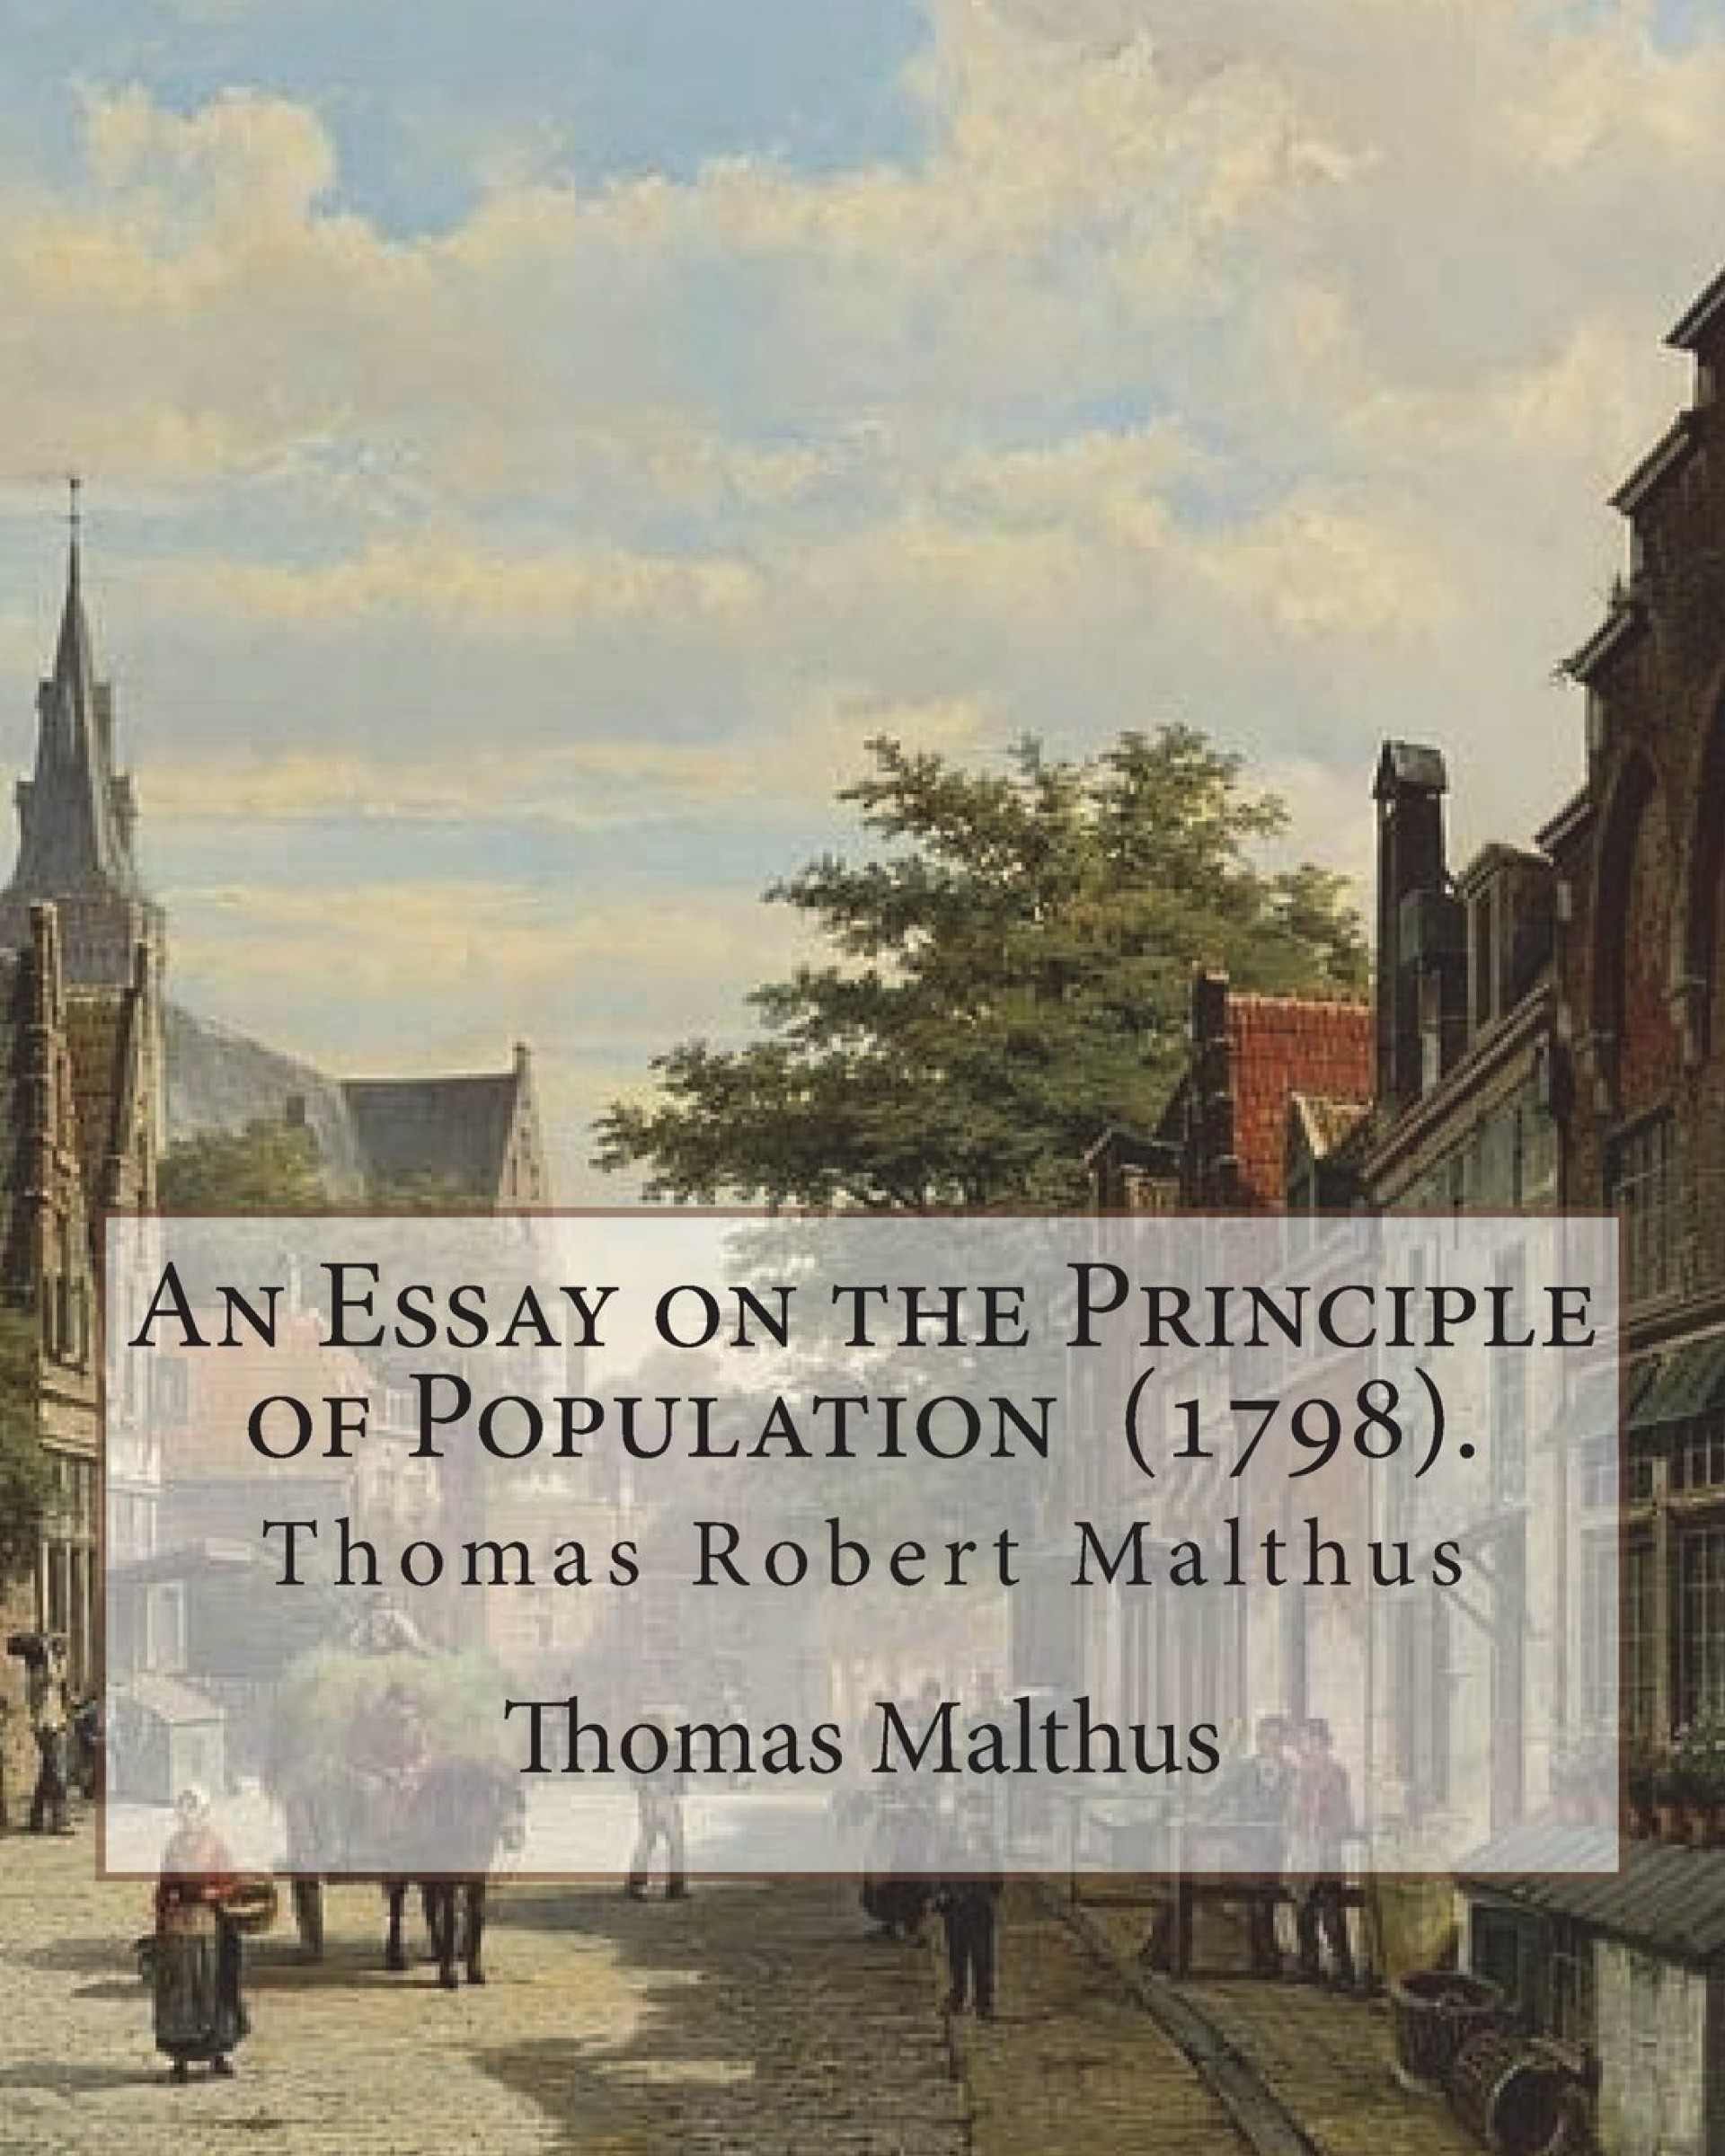 018 Essay On The Principle Of Population 71giypnbhsl Singular Thomas Malthus Sparknotes Advocated Ap Euro 1920